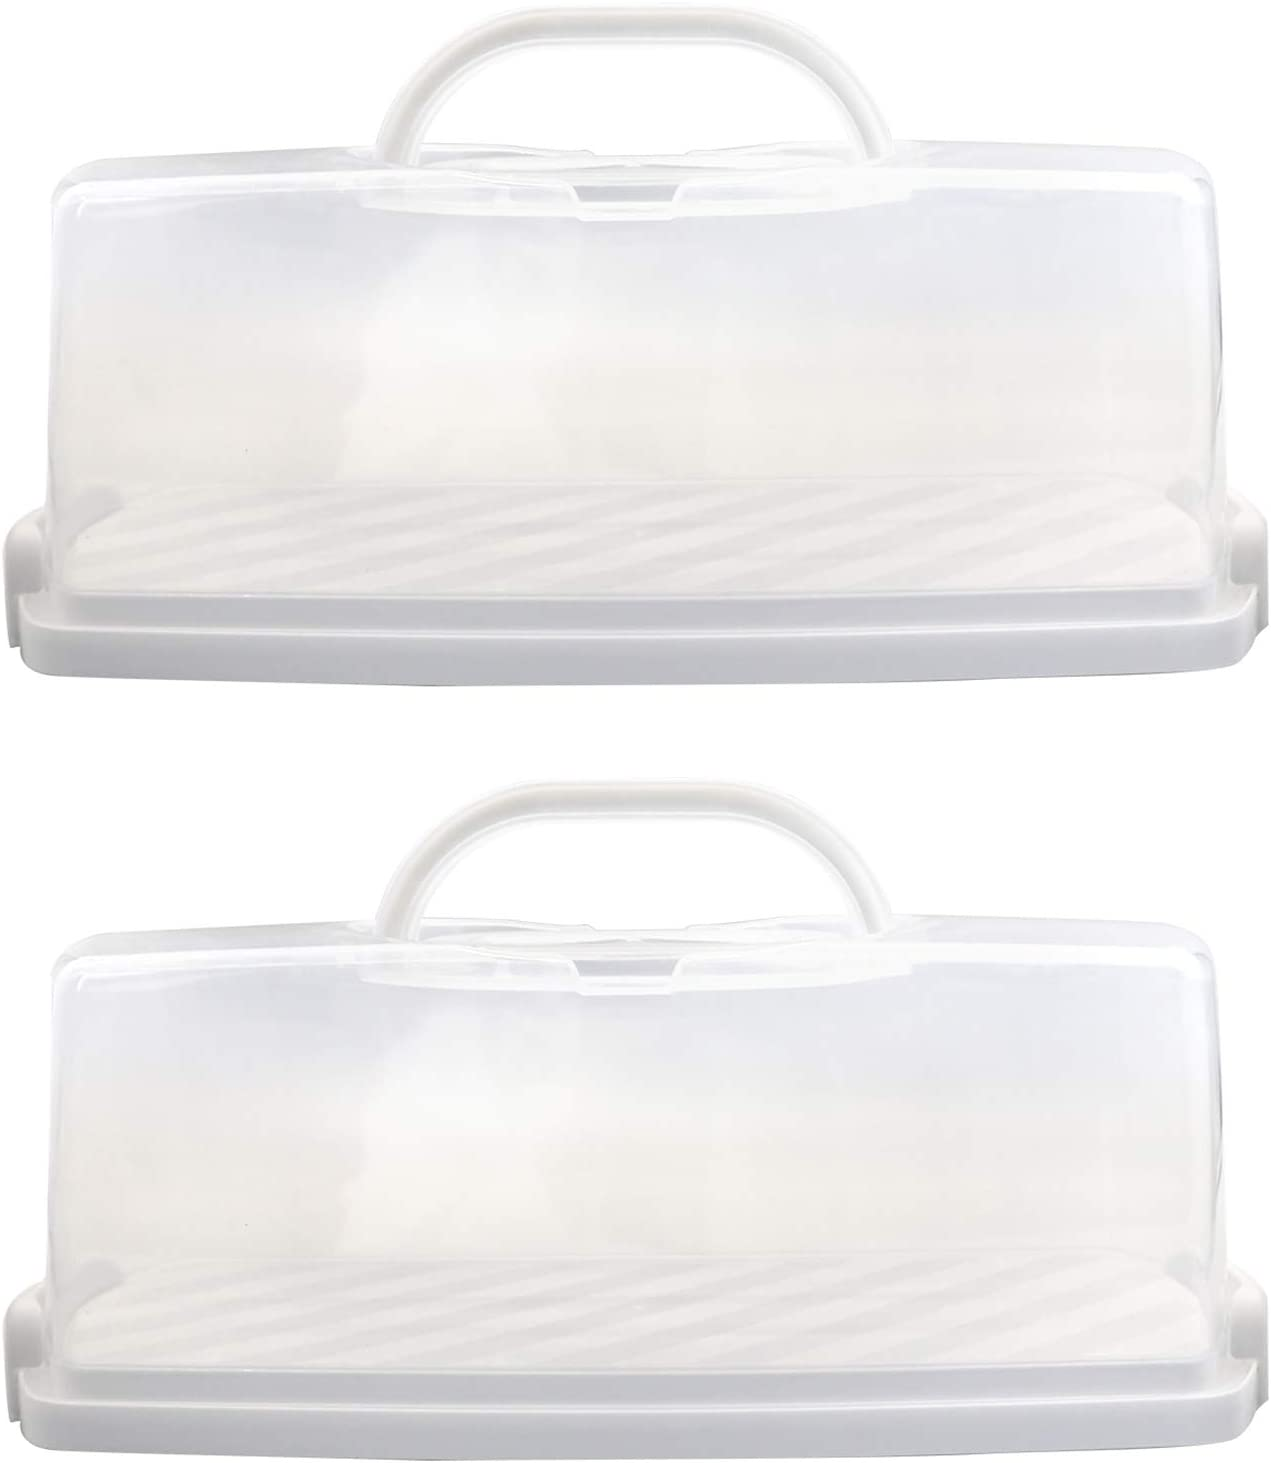 2 Pcs Portable Bread Box with Handle Loaf Cake Container Plastic Rectangular Food Storage Keeper Carrier 13inch Translucent Dome for Pastries, Bagels, Bread Rolls, Buns or Baguettes (White)